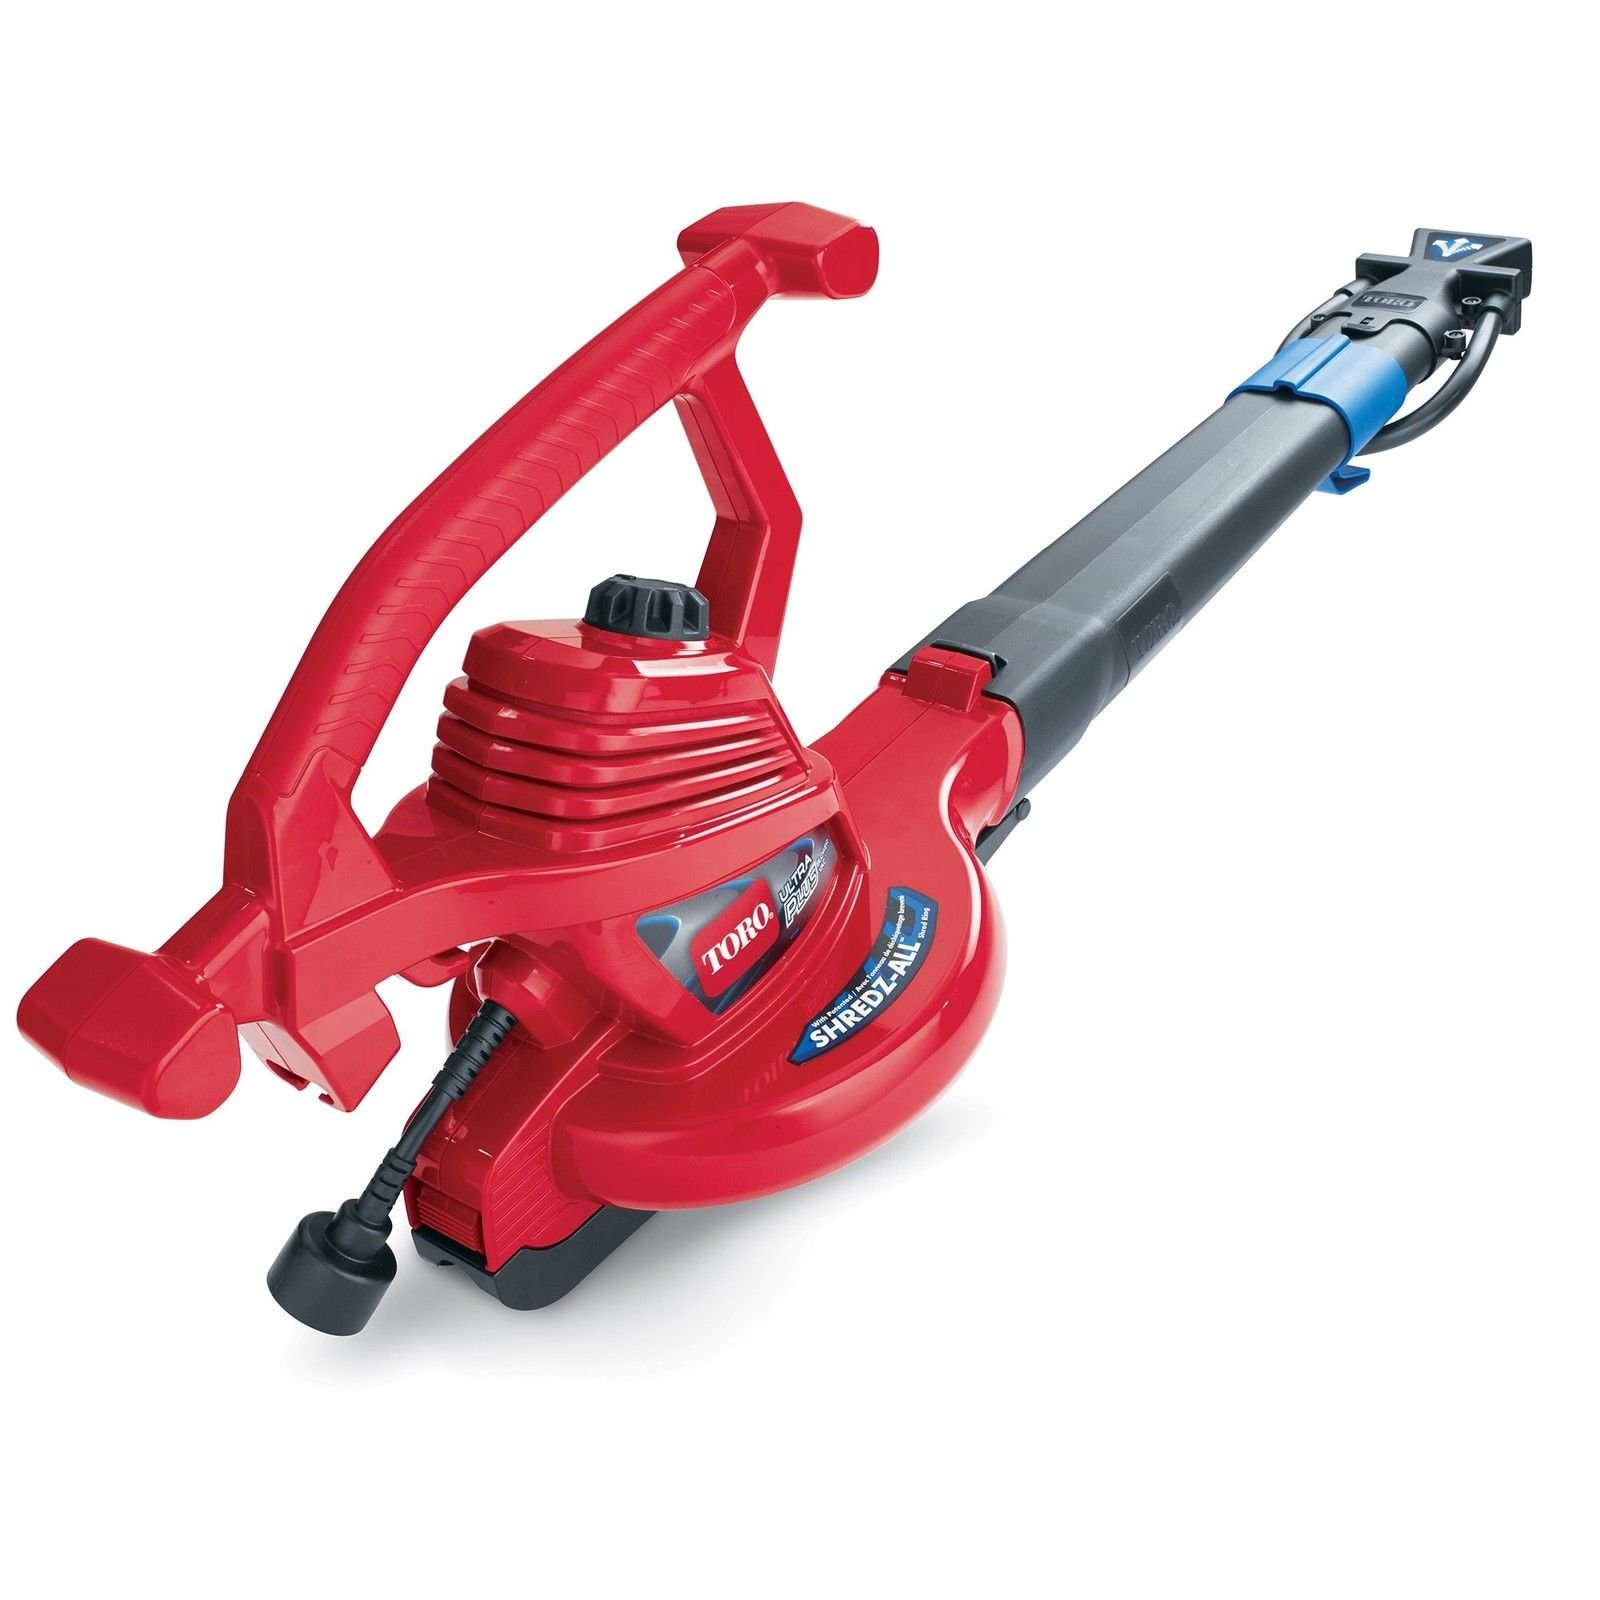 Toro 51621 UltraPlus Leaf Blower Vacuum Variable-Speed (up to 250 mph) with M... .#GH45843 3468-T34562FD268245